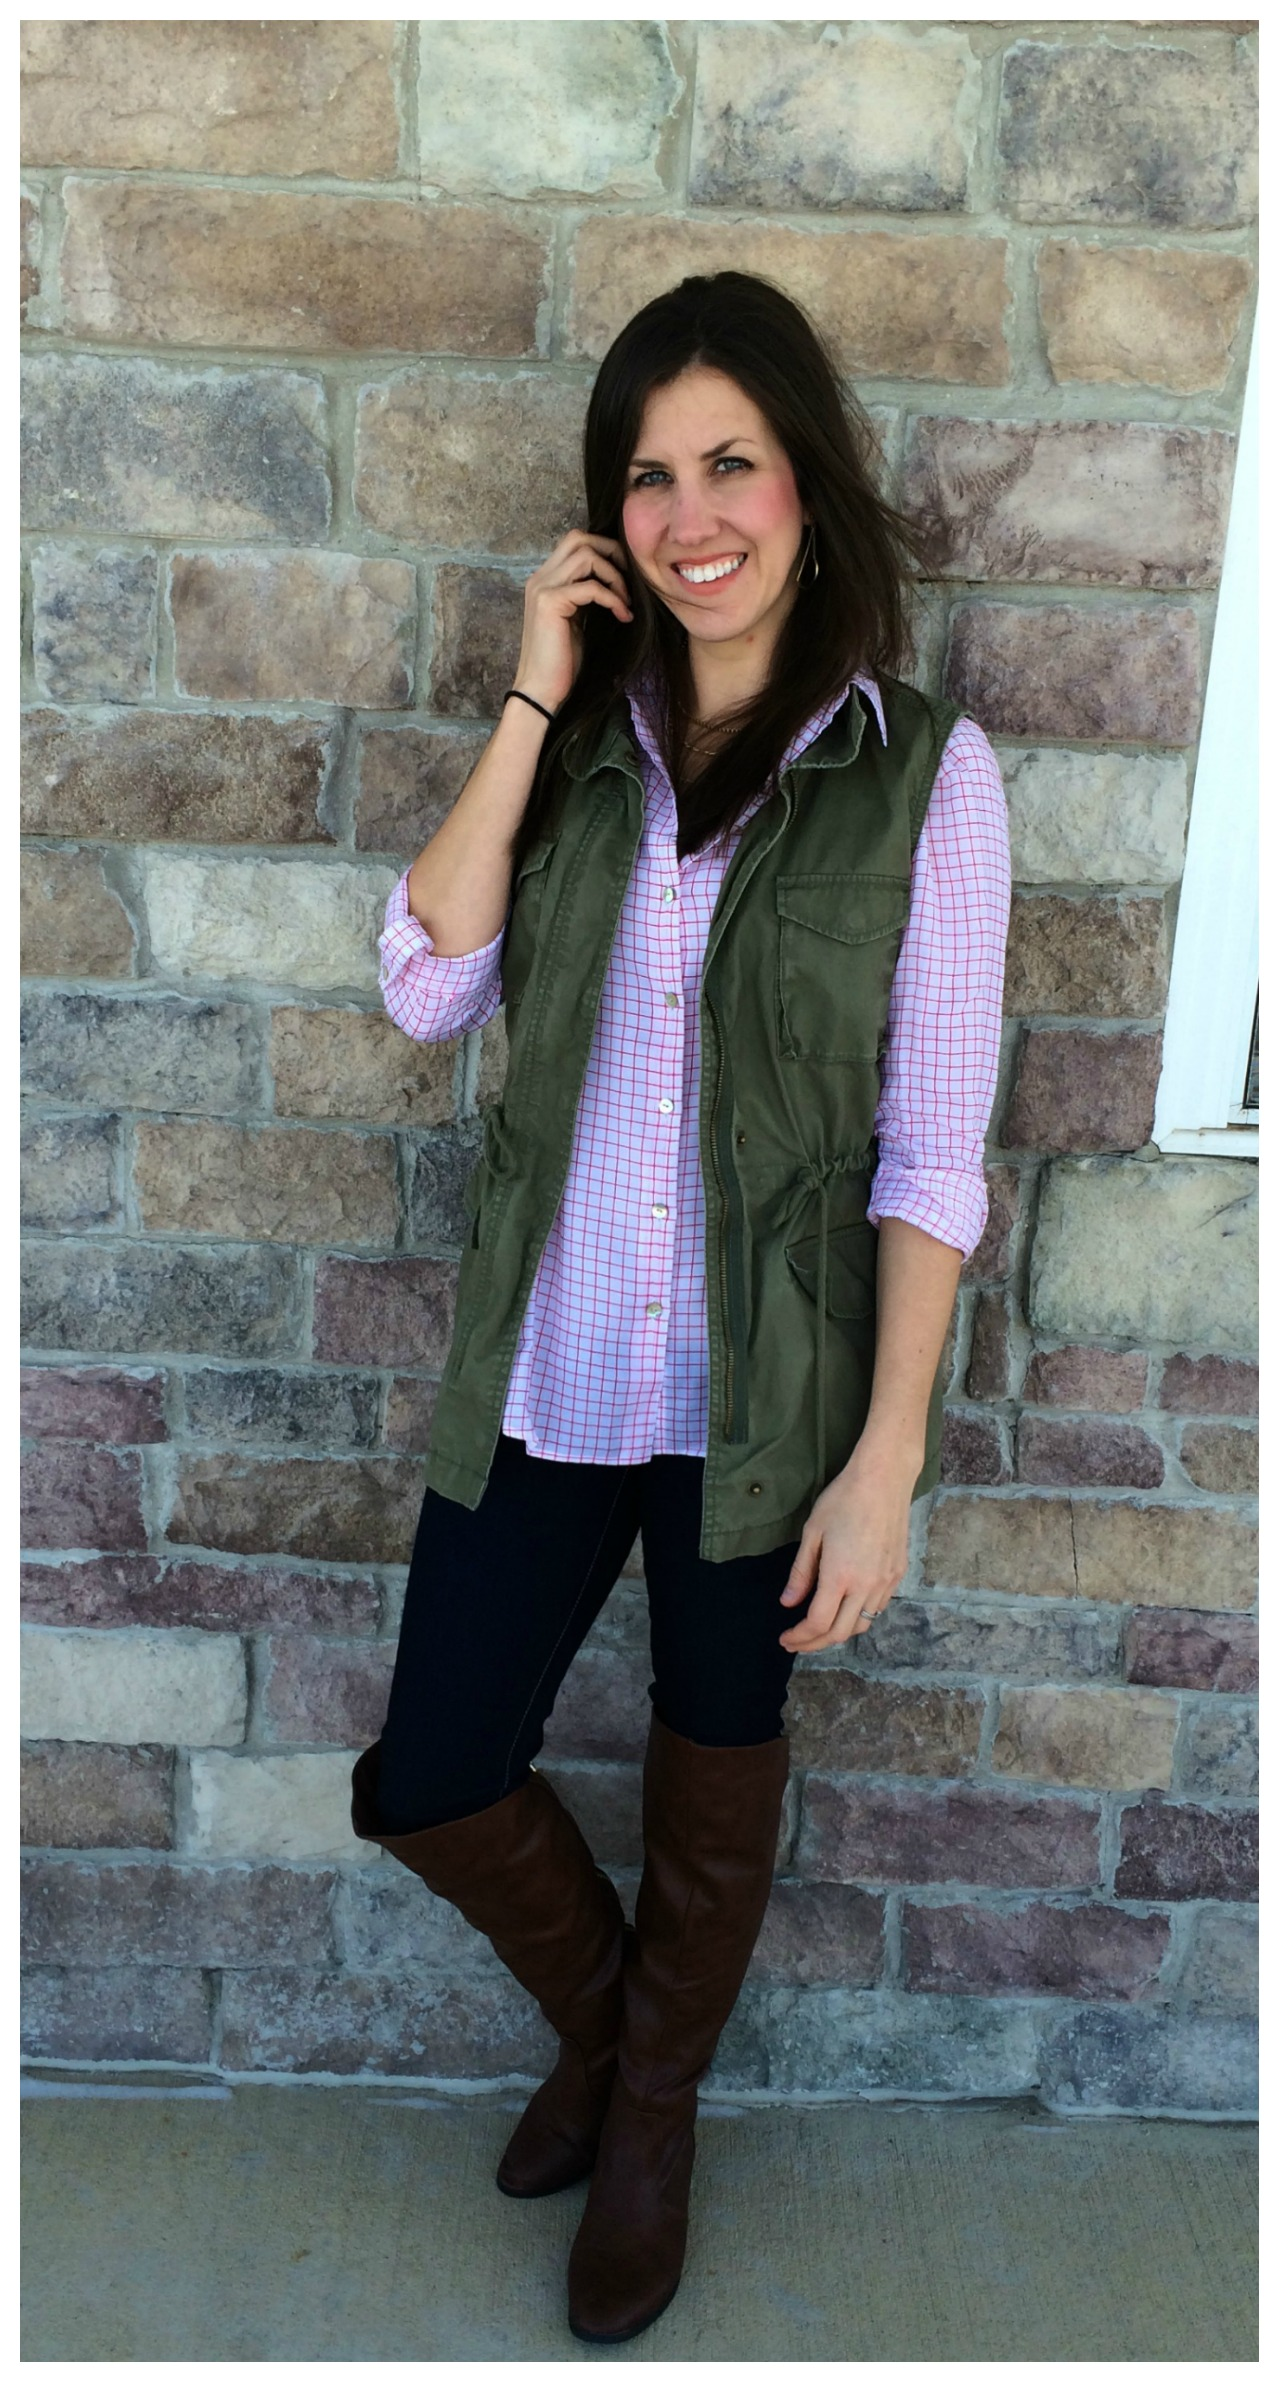 Womens Skinny Jeans Outfit Outfit 4 Dark Skinny Jeans